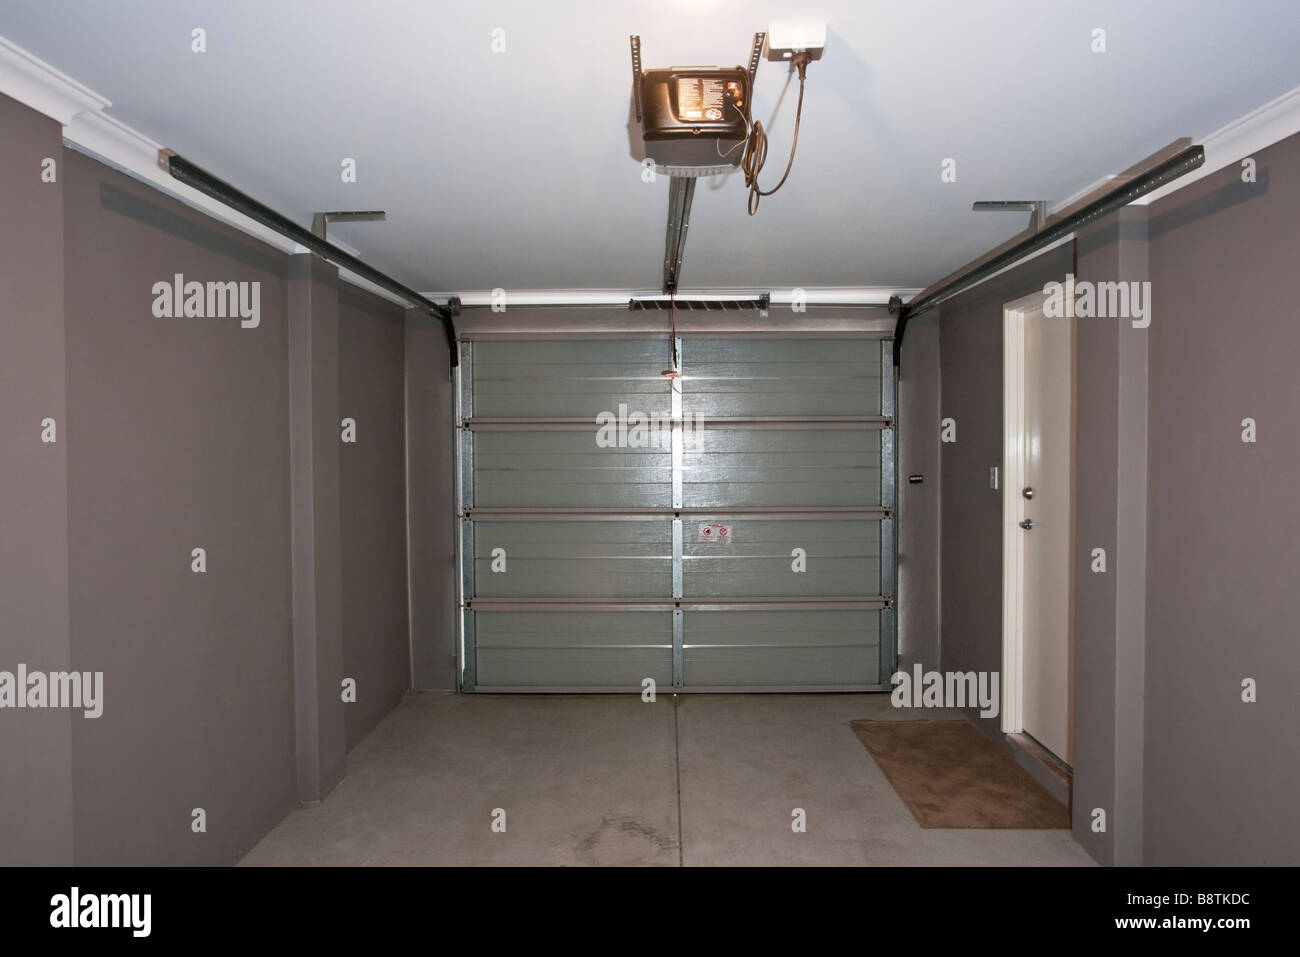 The Inside Of A Garage With An Automatic Garage Door Stock Photo Alamy